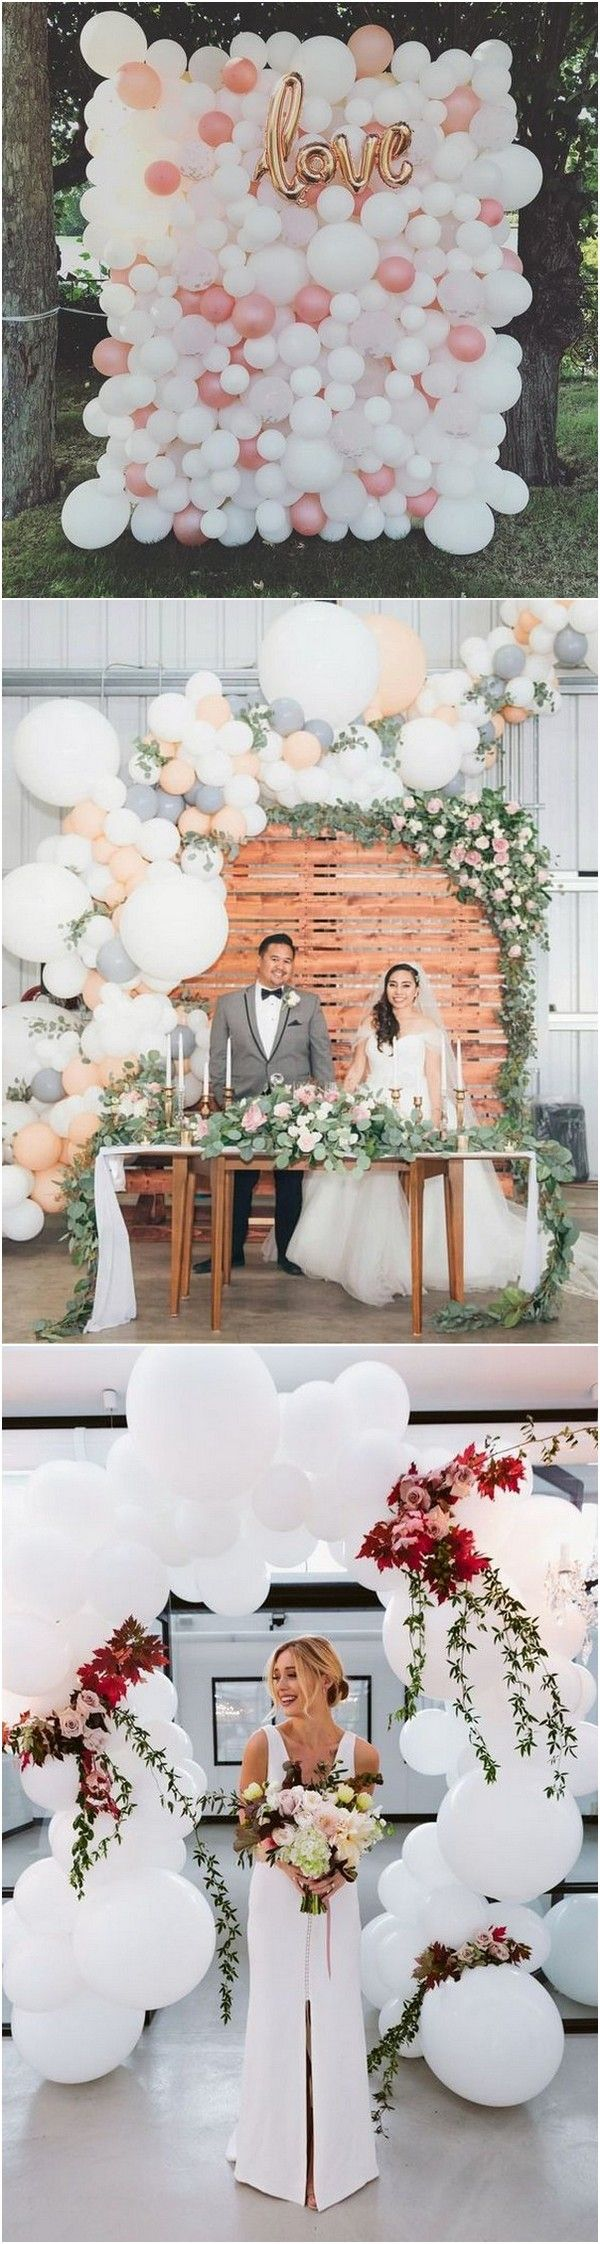 40 Awesome Wedding Decoration Ideas with Balloons